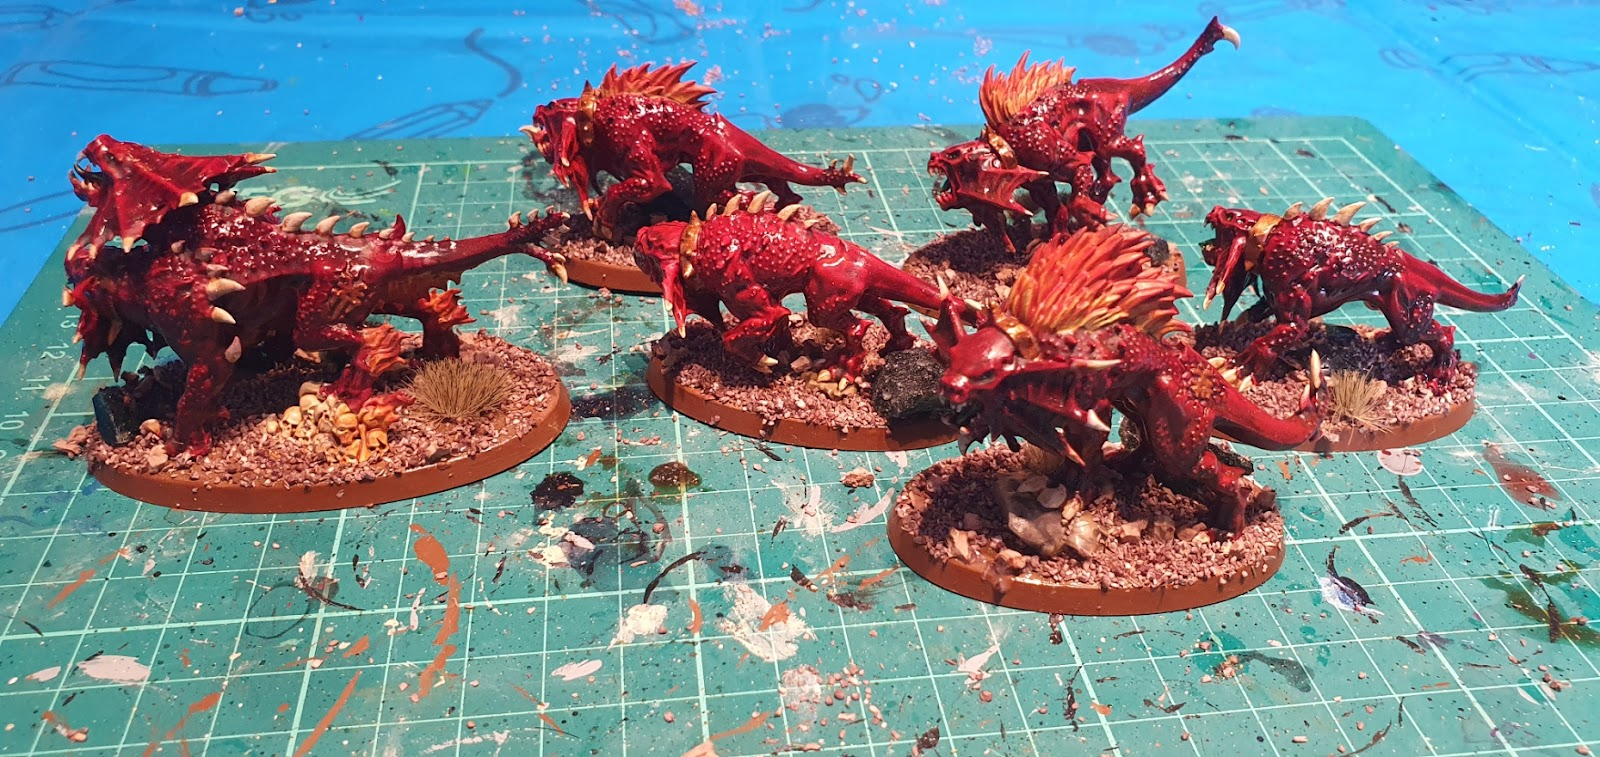 Fleshhounds of Khorne models, painted with red flesh and orange/yellow flame effects.